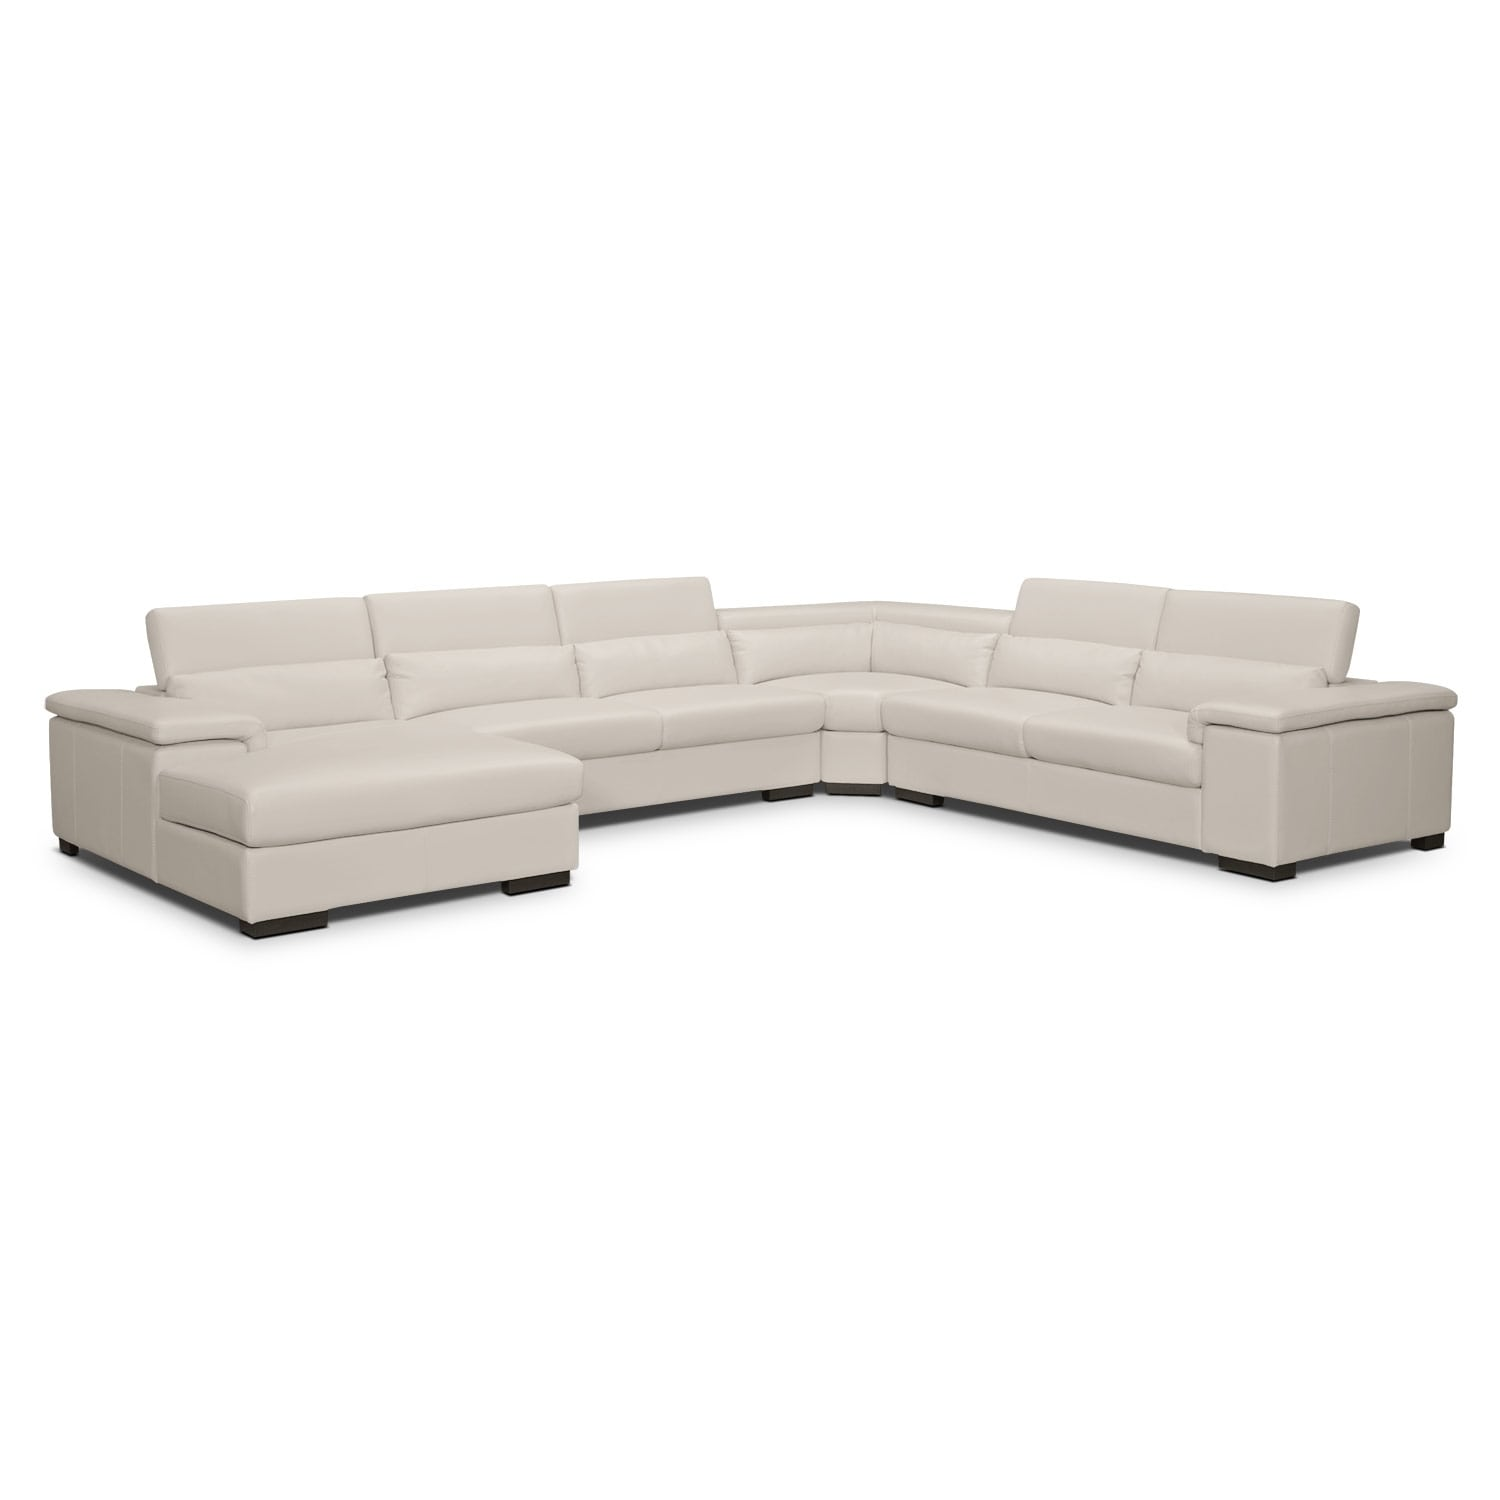 Living Room Furniture - Ventana 4 Pc. Sectional (Reverse)